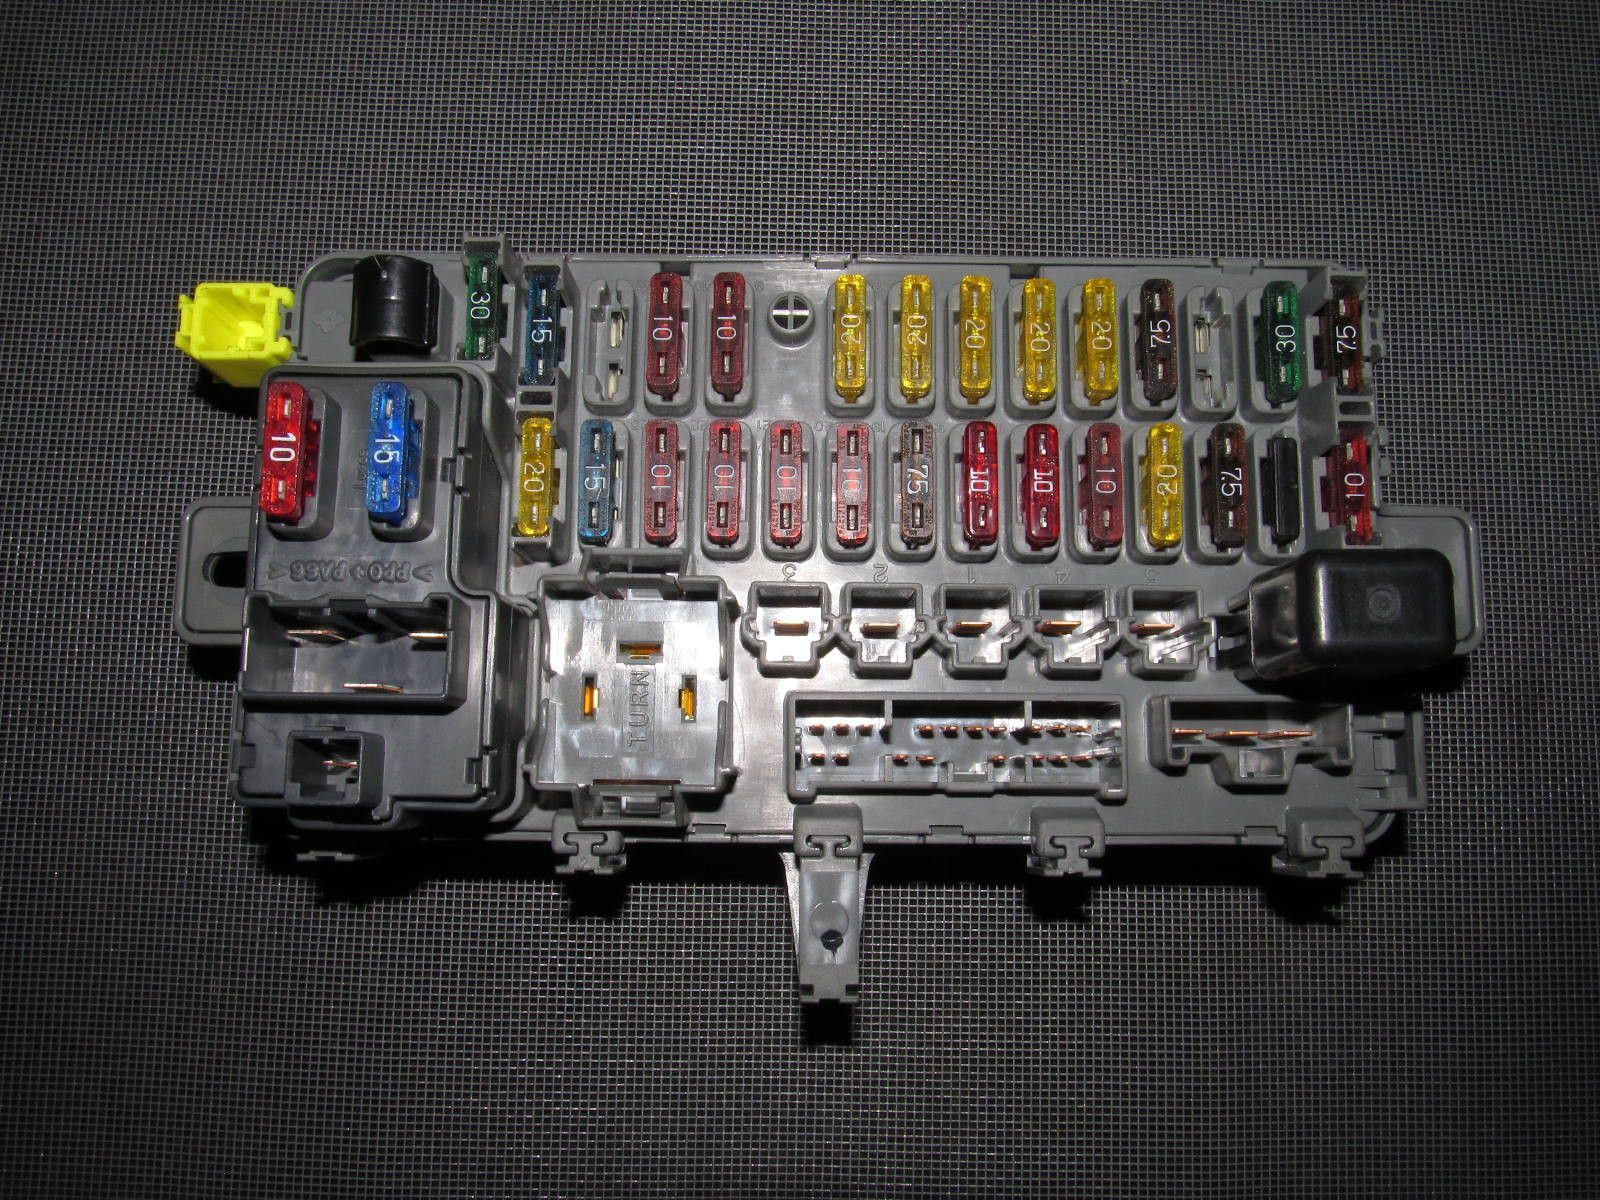 [SCHEMATICS_4FD]  10A4C6C 95 Acura Integra Fuse Box Diagram | Wiring Resources | Fuse Box 1994 Acura Integra |  | Wiring Resources